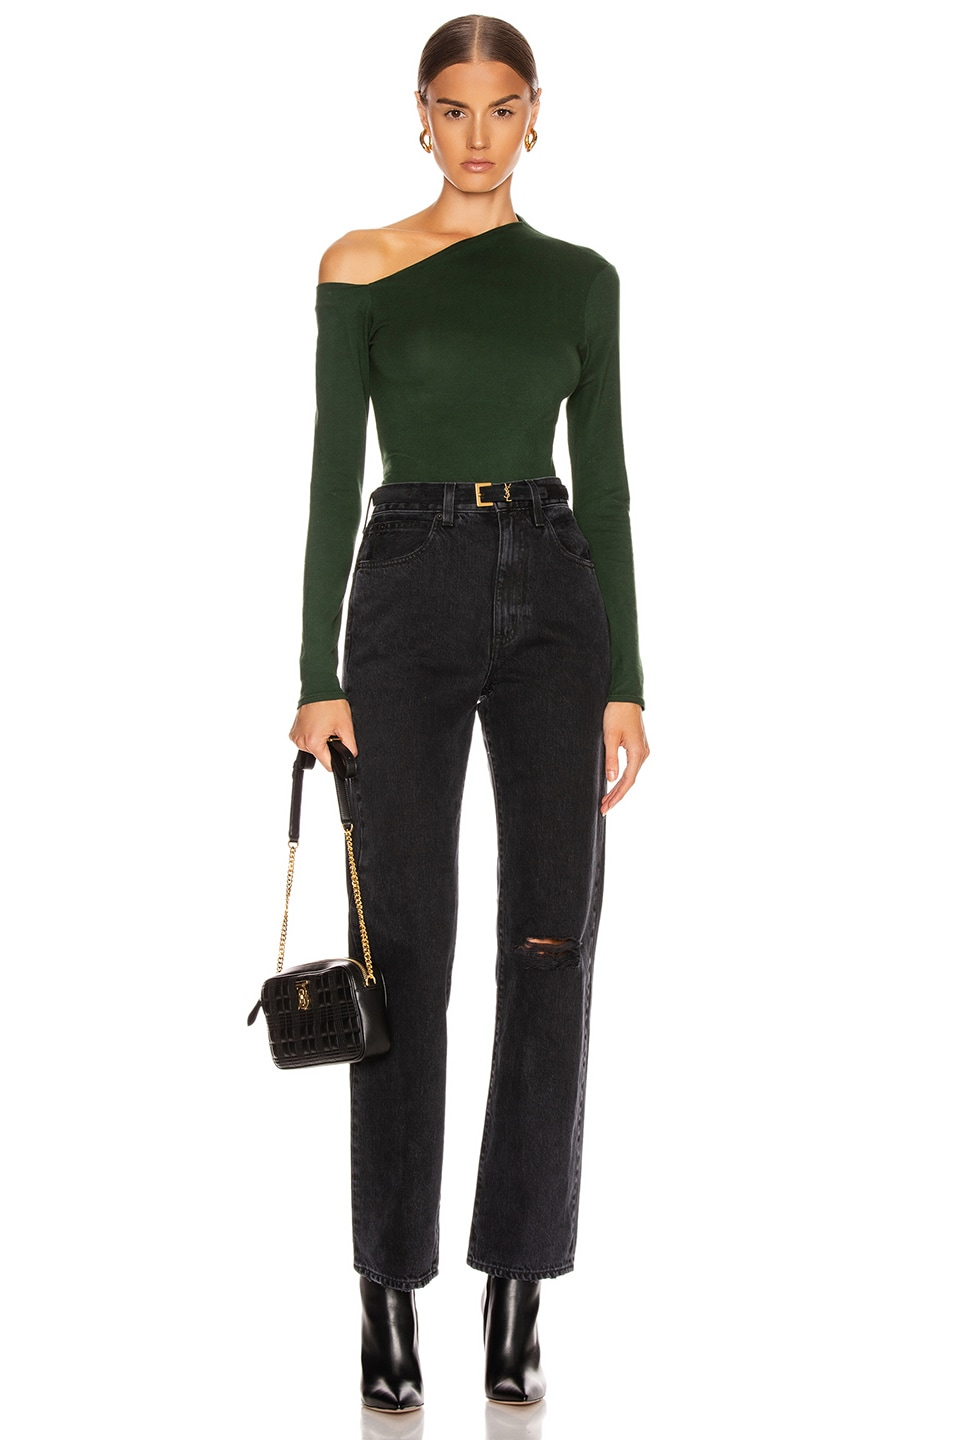 Image 4 of Enza Costa Angled Exposed Shoulder Long Sleeve Top in Evergreen